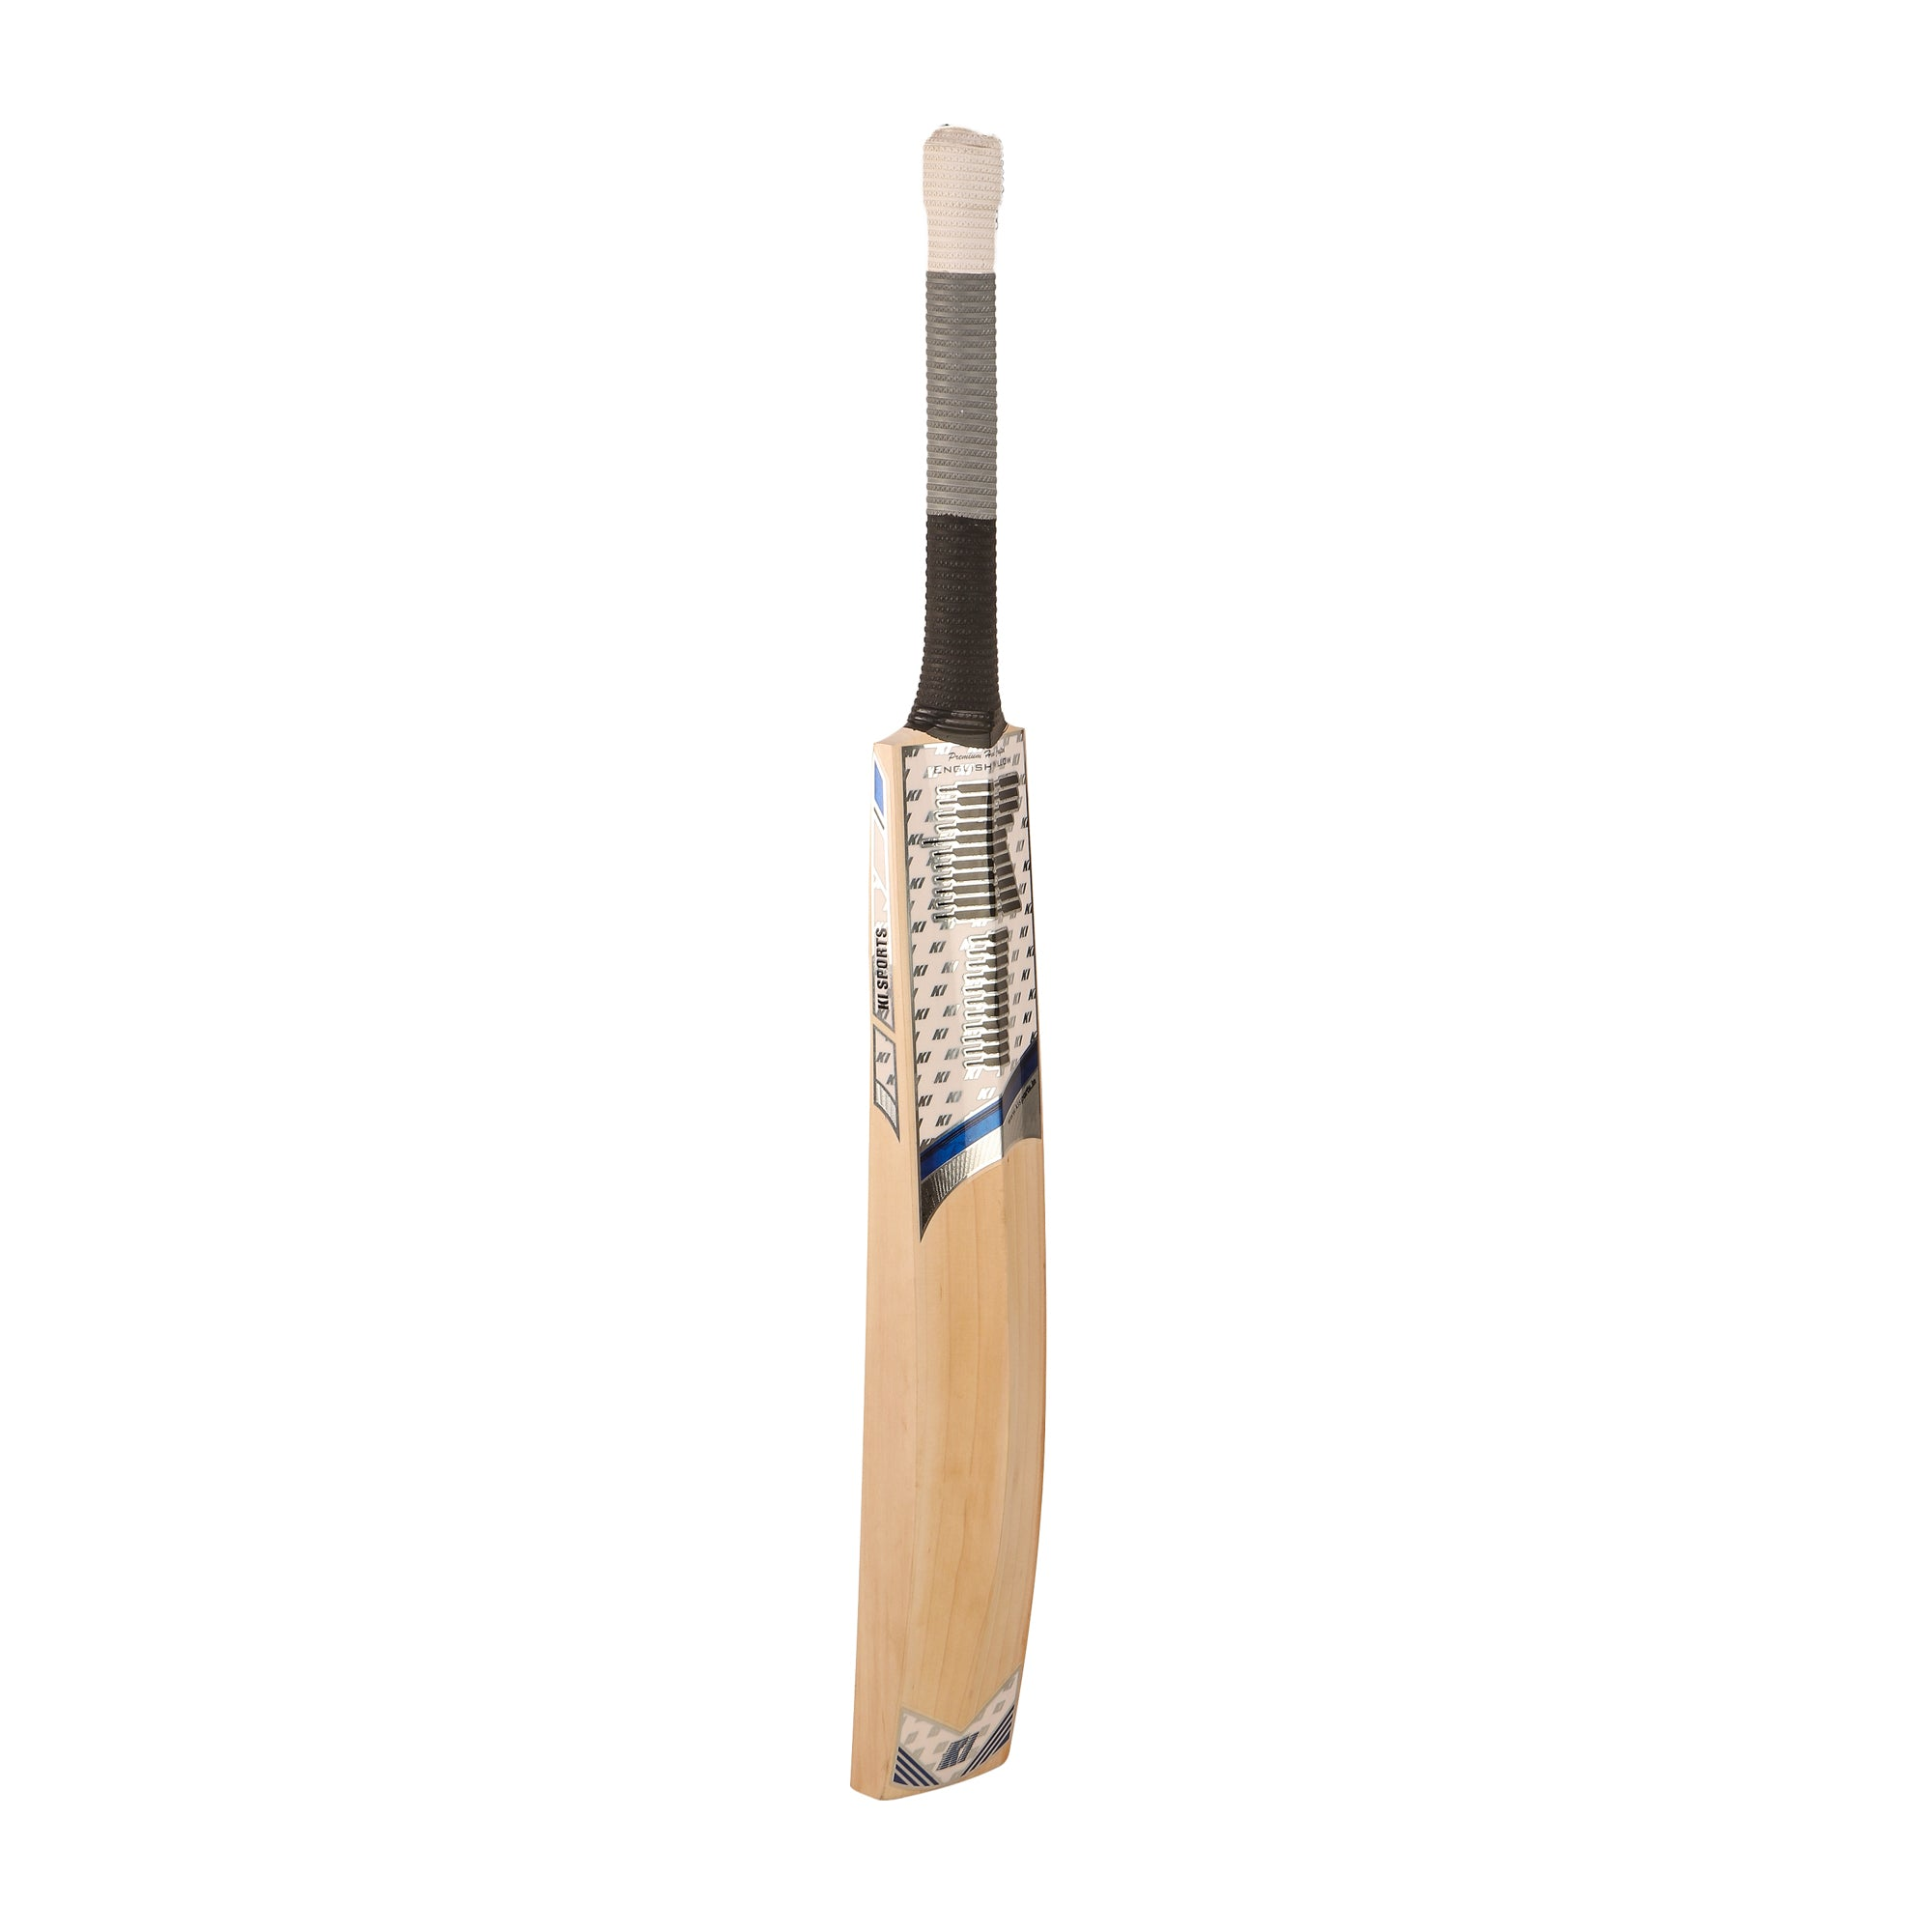 Boltric 2000 SH-English Willow Bat